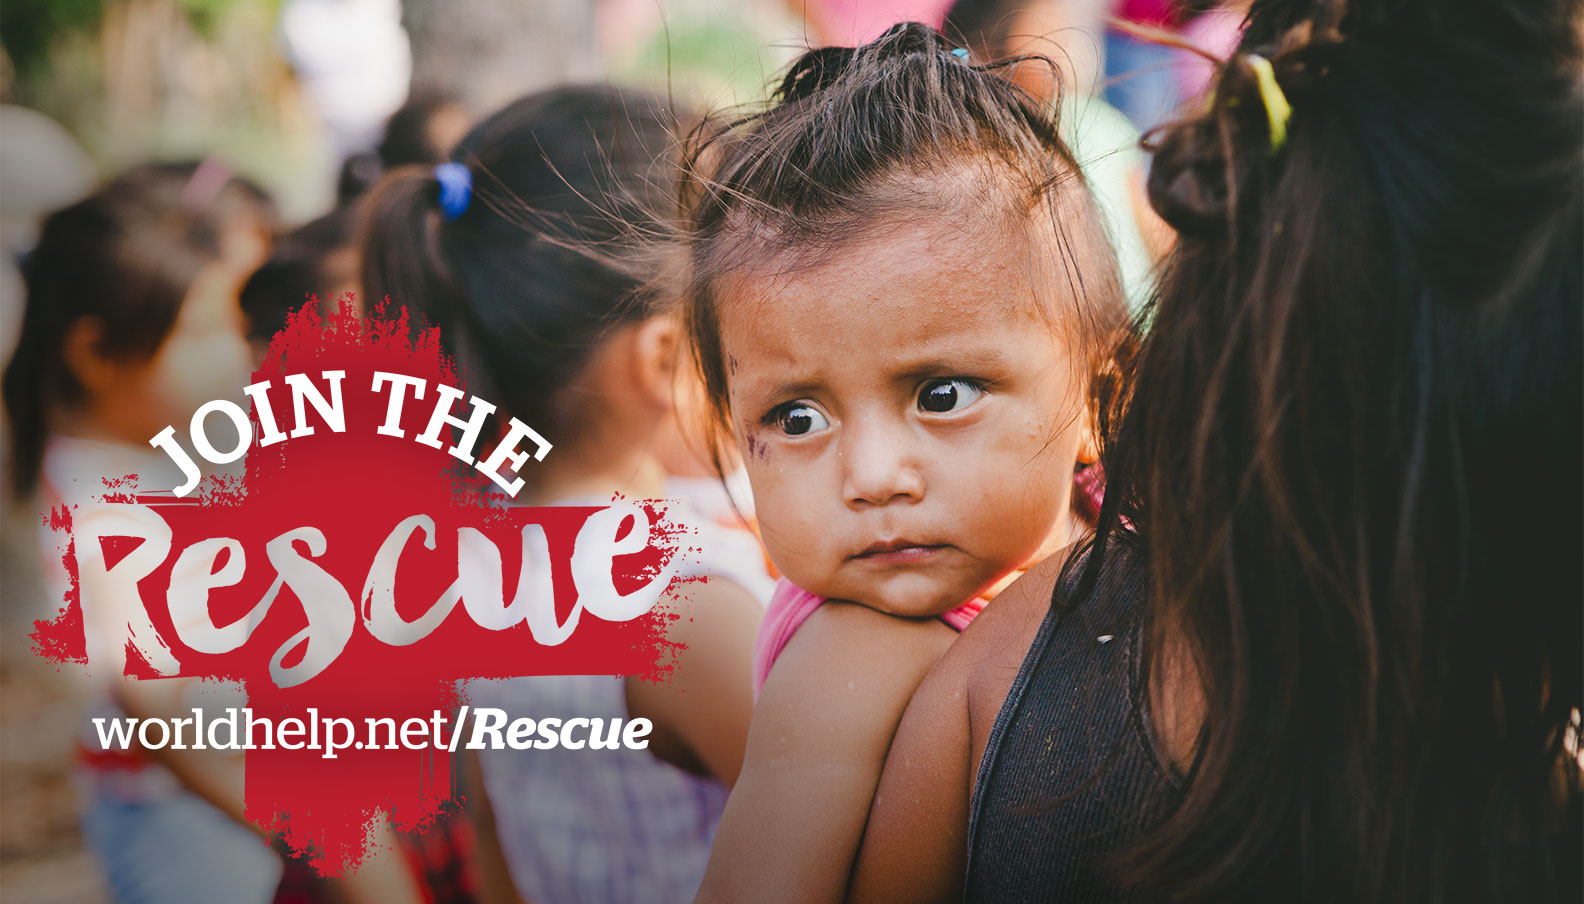 Join-the-Rescue_Bloggers-Page_Header_1584x904